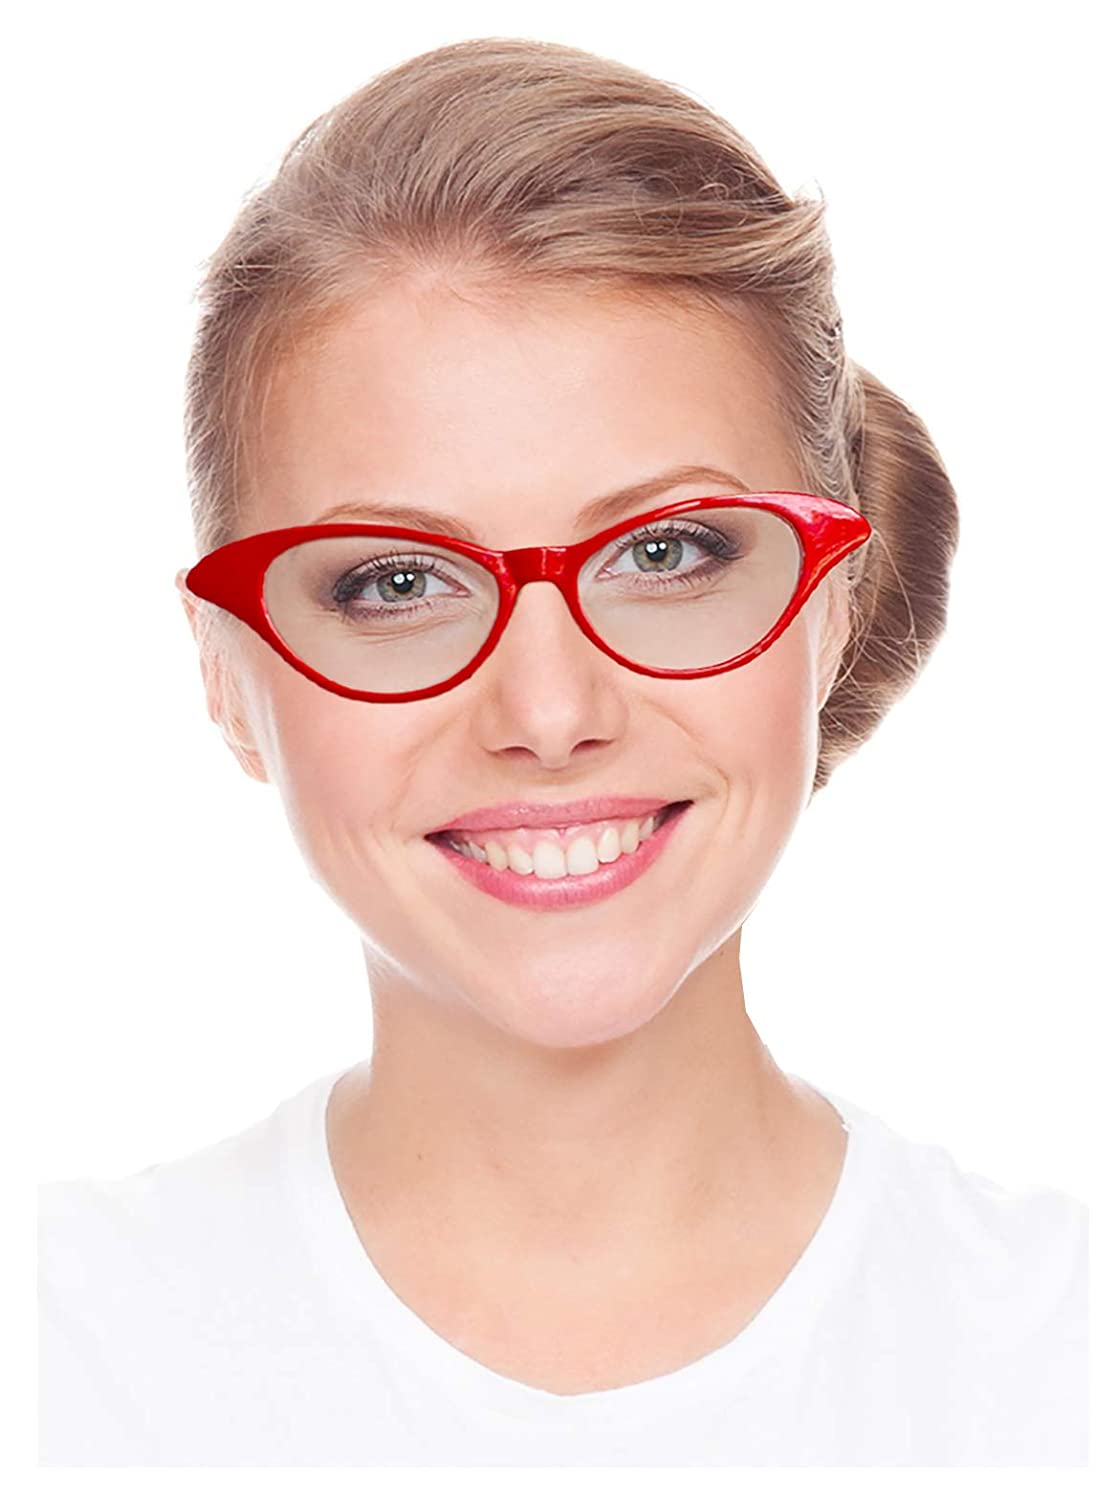 d31cfc7ad03 Amazon.com  Costume Adventure Red Cat Eye Costume Glasses 50s Retro   Clothing